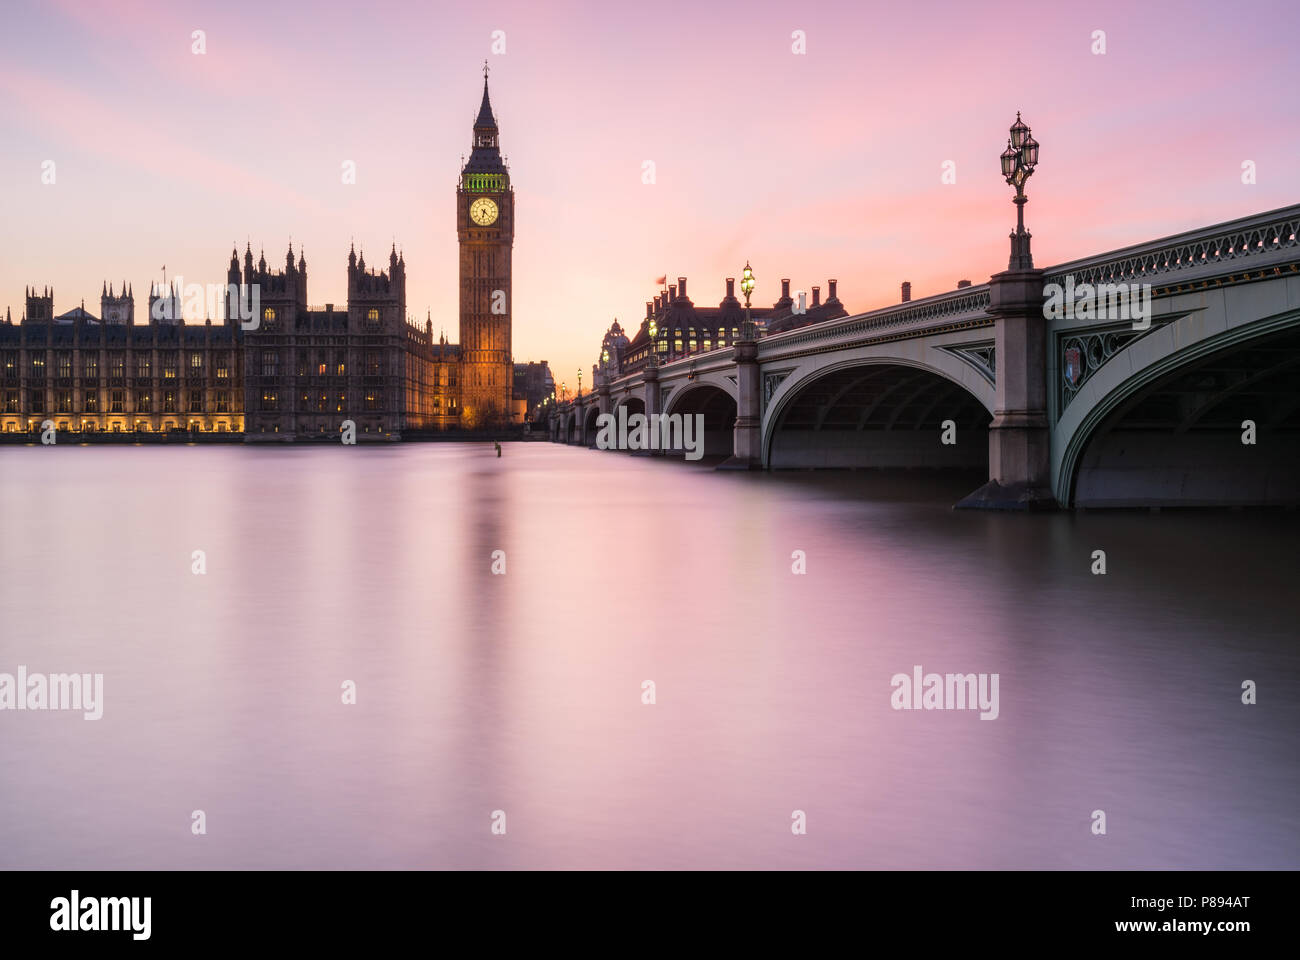 Magenta sunset over Big Ben and the Houses of Parliament in London including Westminster Bridge reflected in the smooth water of the River Thames - Stock Image